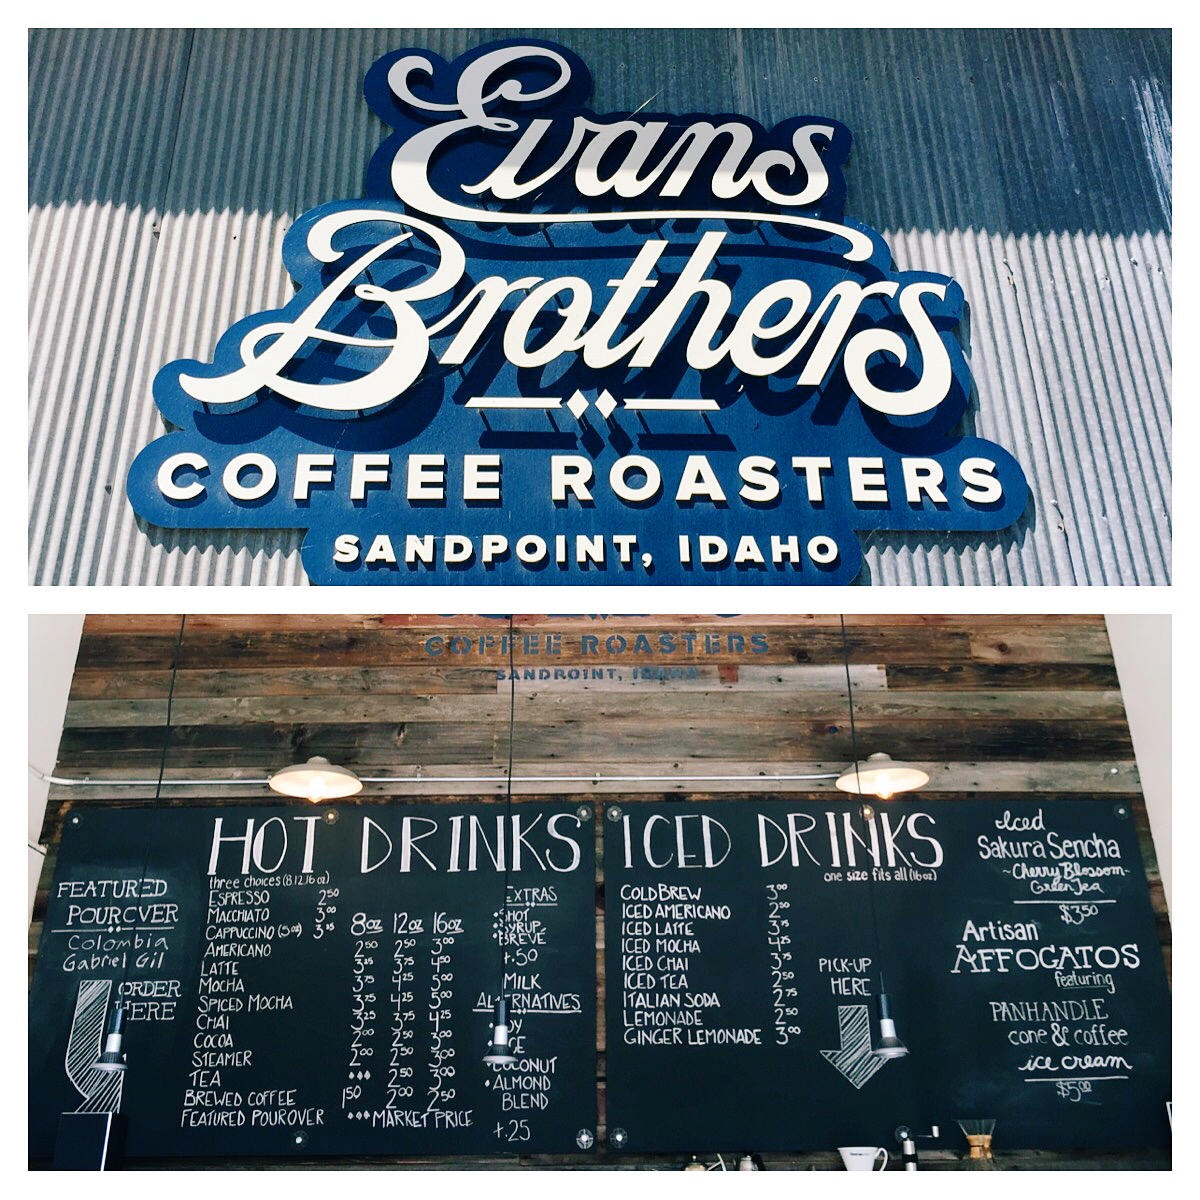 Evans Brothers Coffee  is Sandpoint's answer to  Blue Bottle Coffee